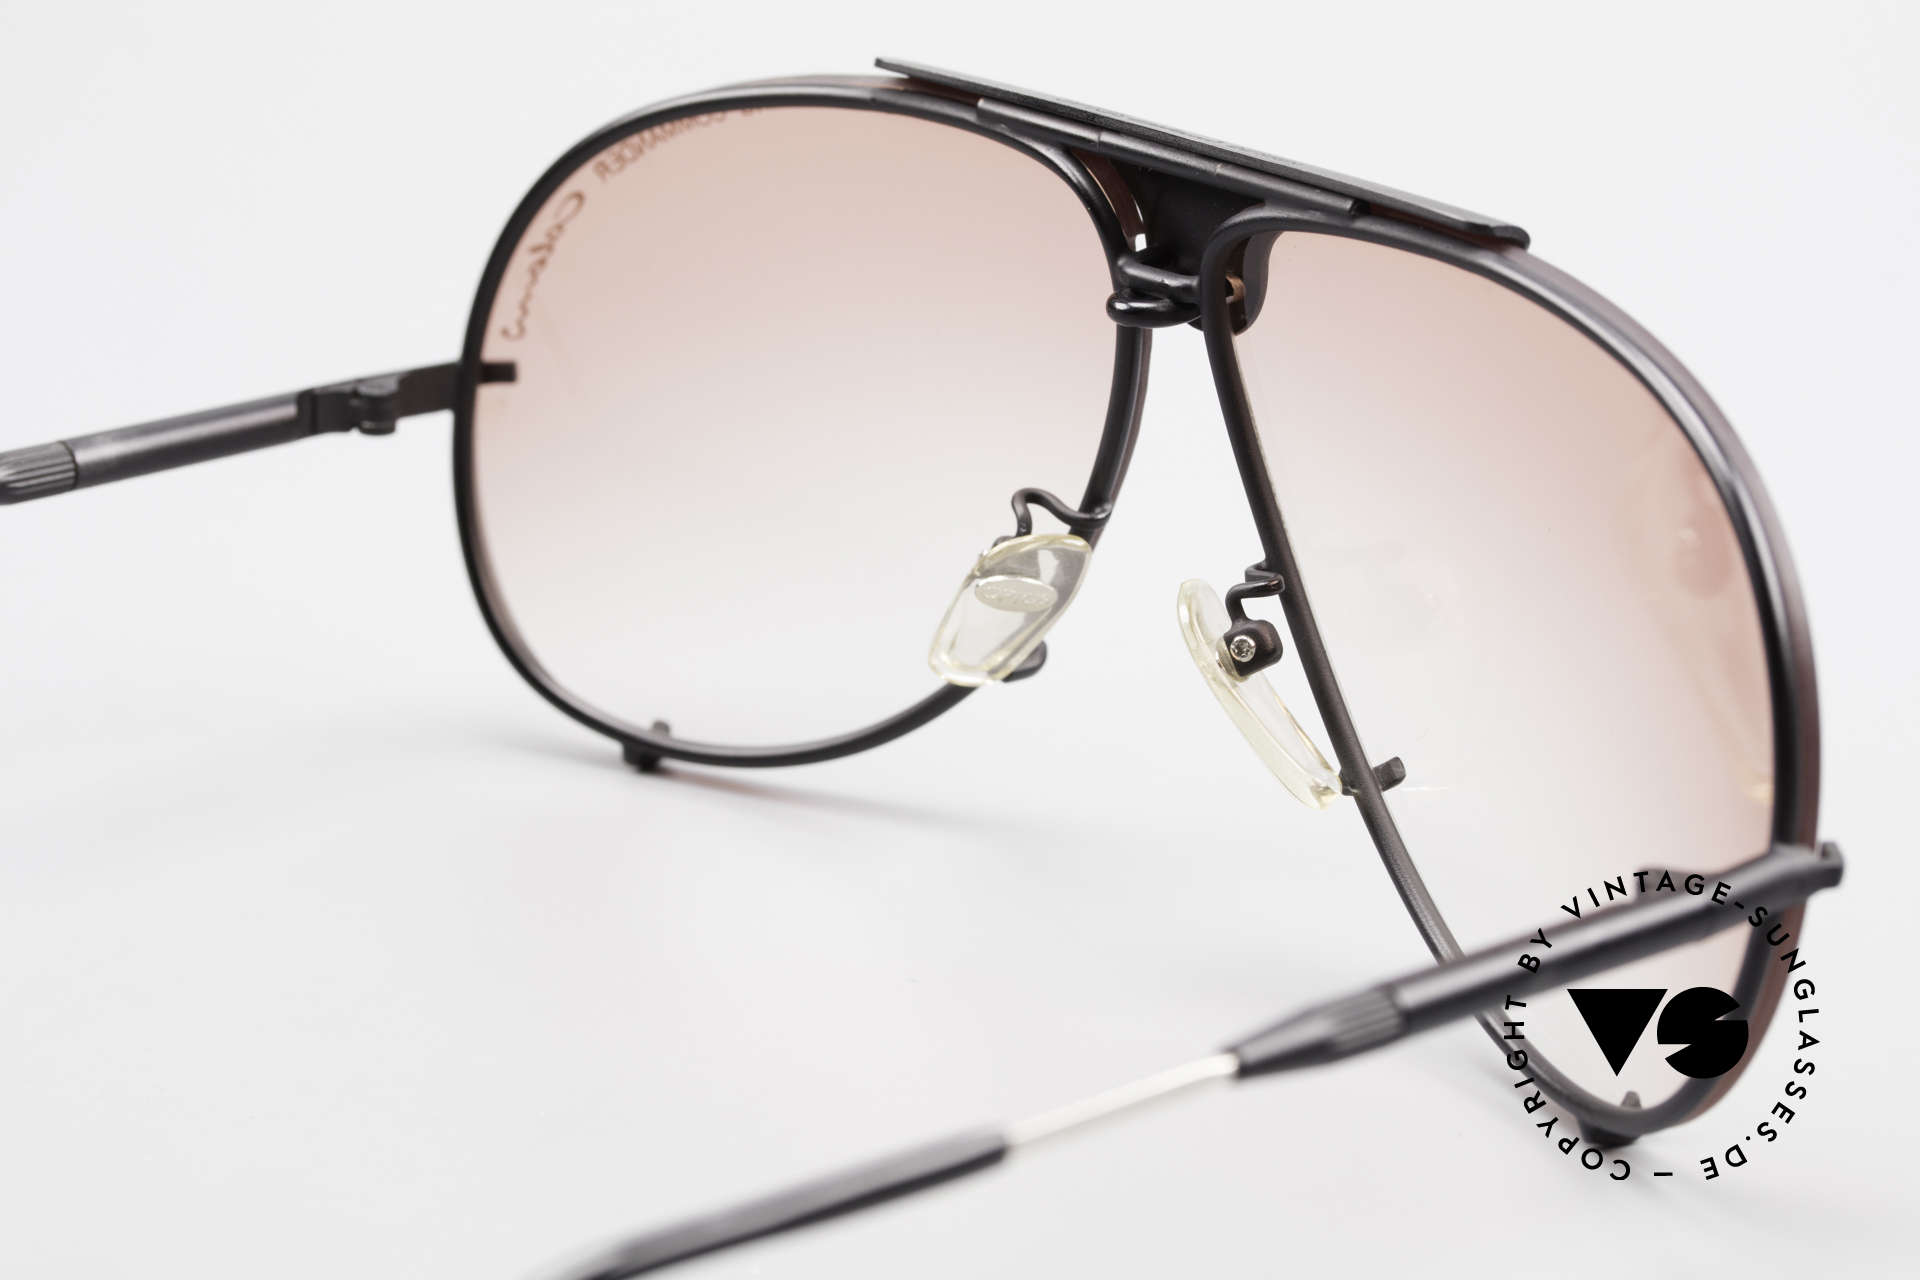 Colani 10-401 Wing Commander Optos Design, with ADJUSTABLE temple length (for a perfect fit), Made for Men